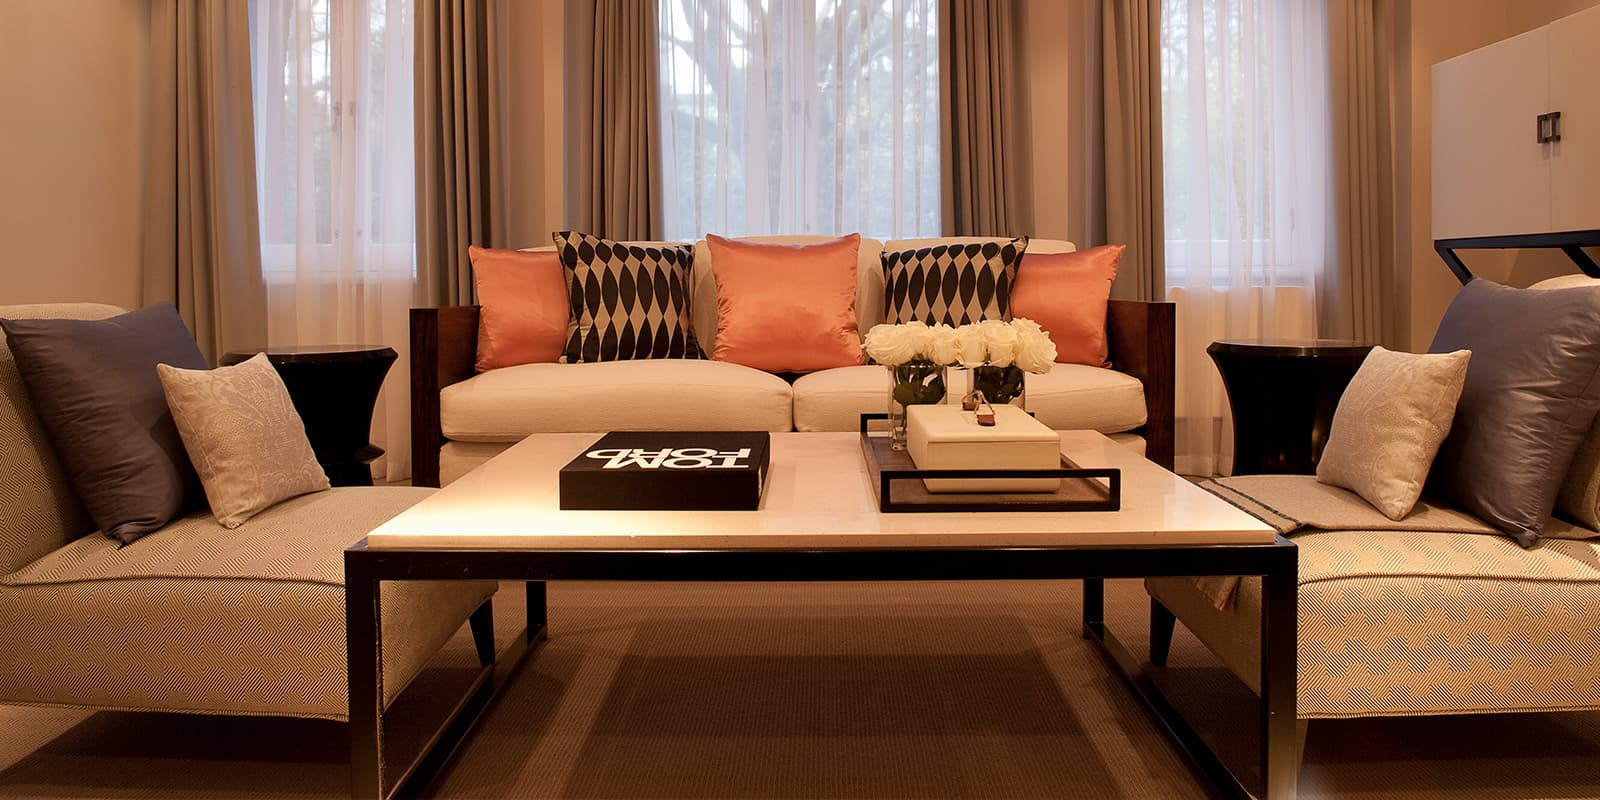 Large contemporary sofas and living room